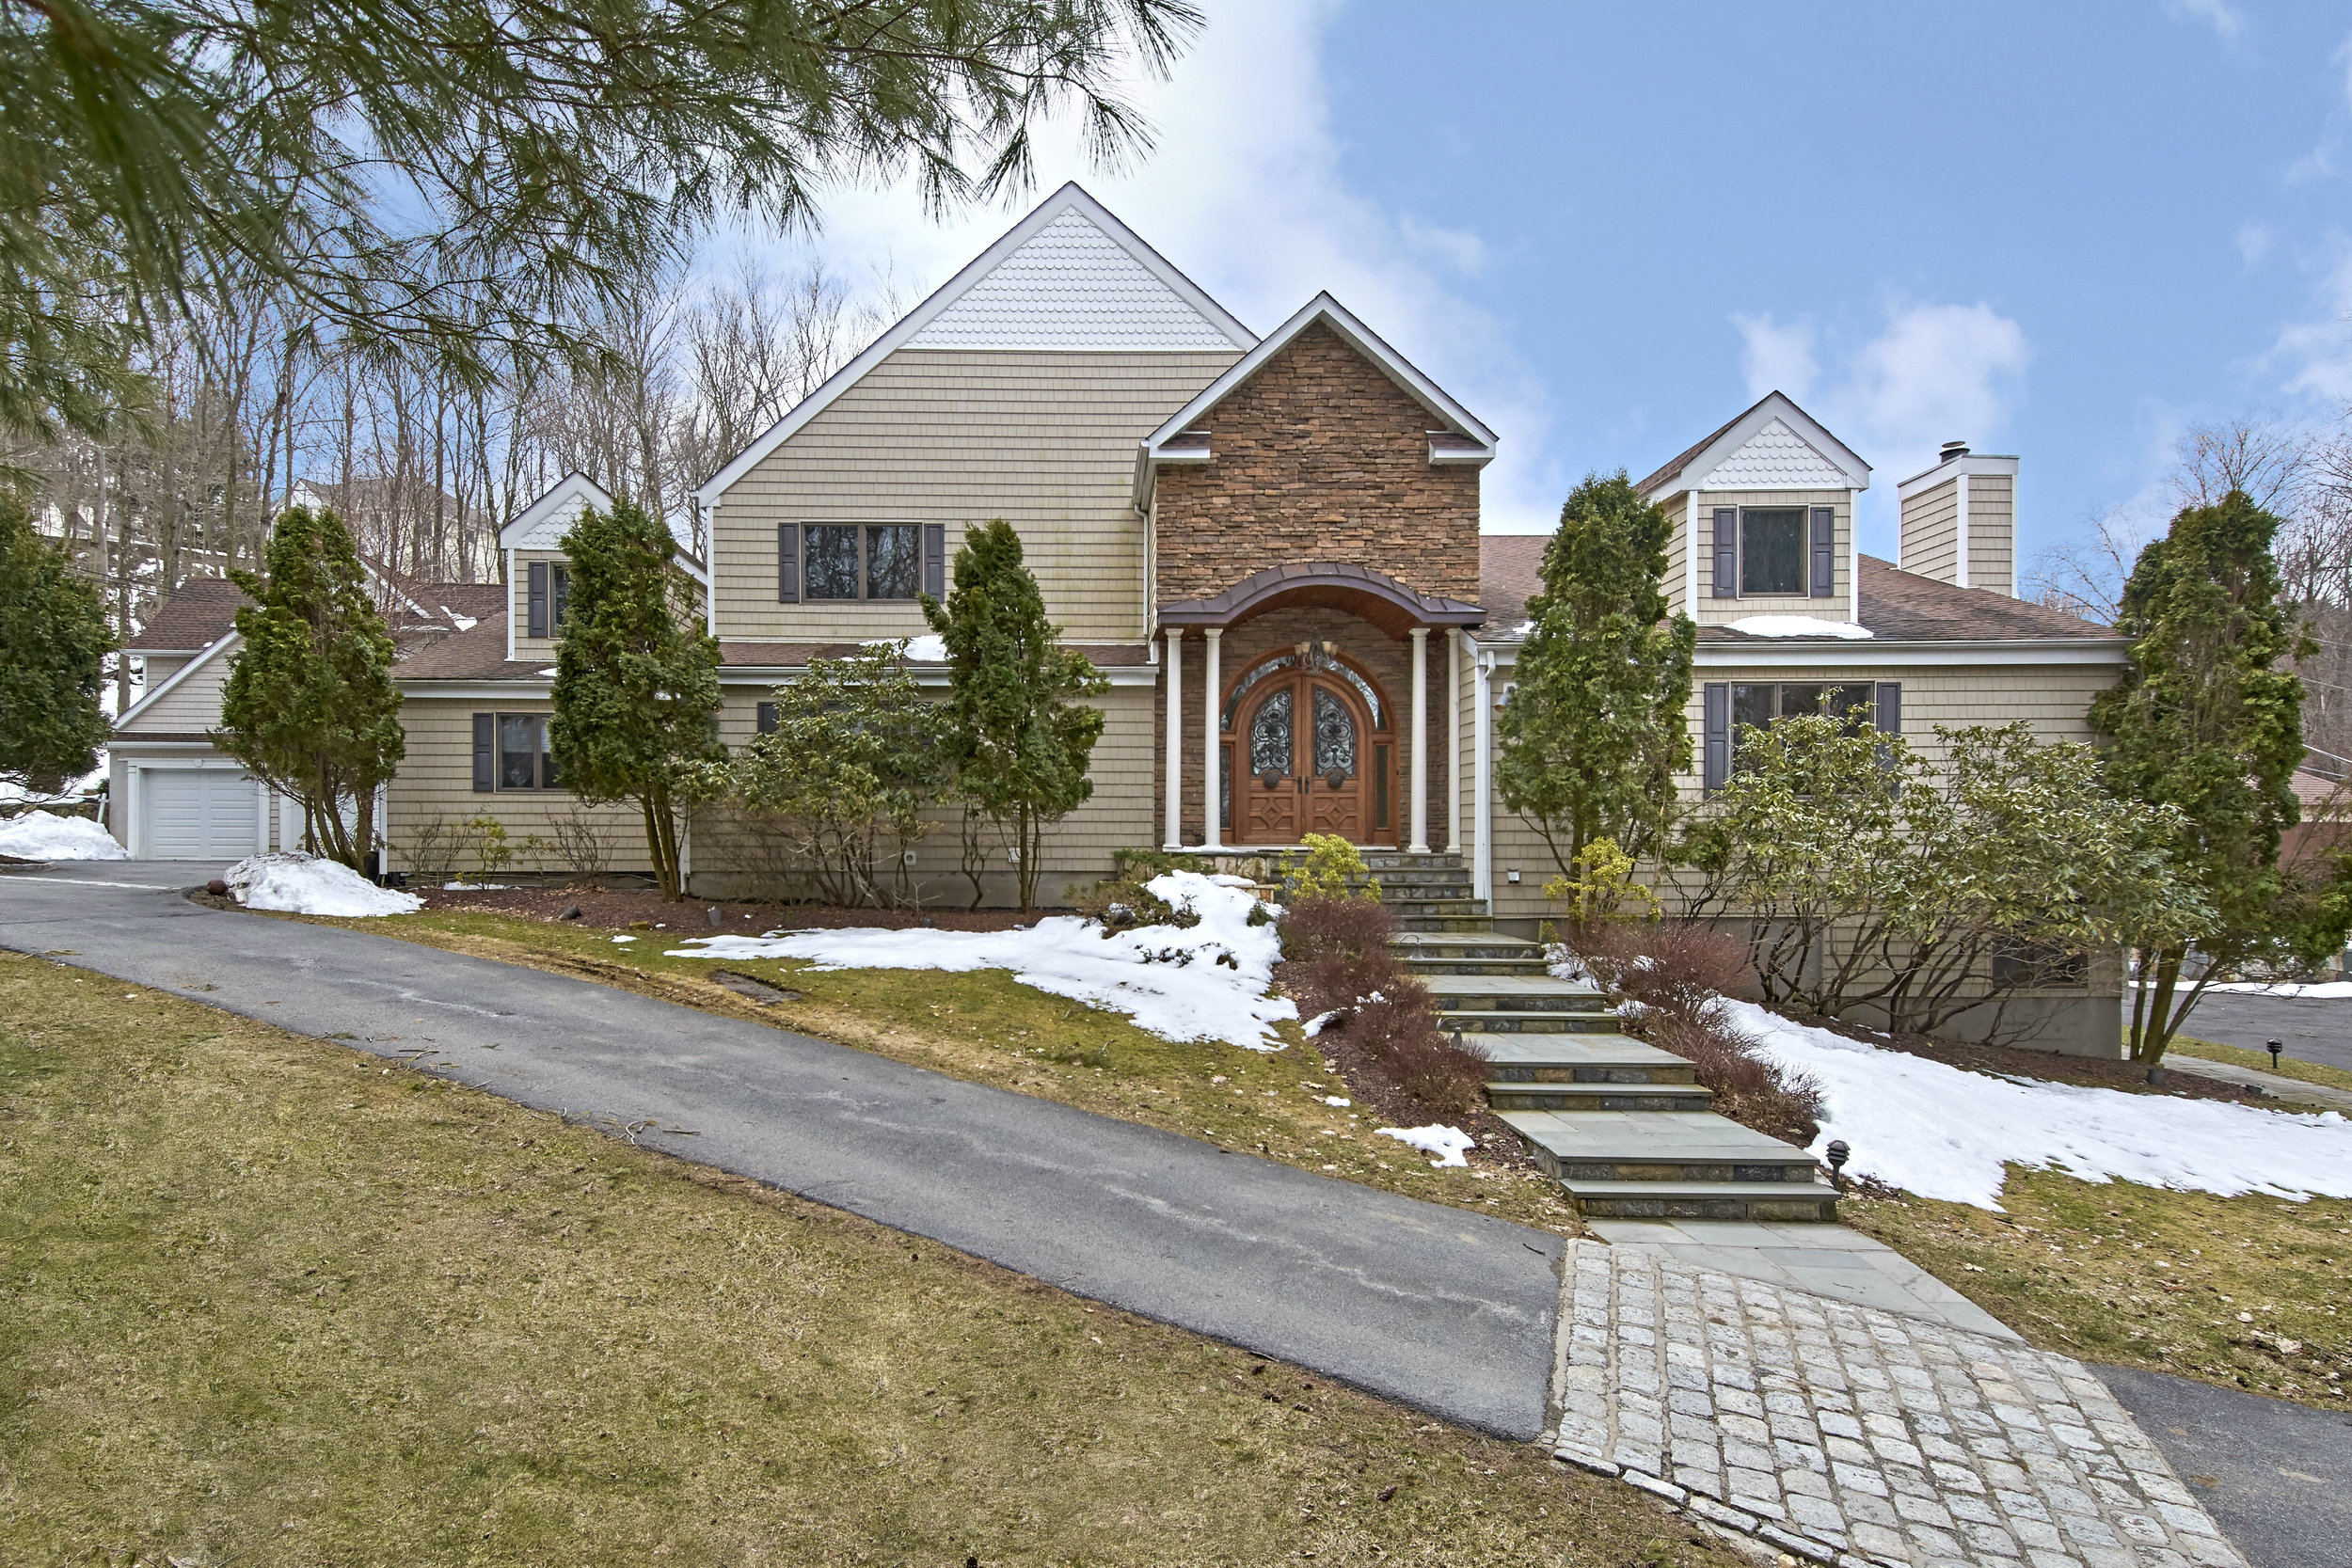 37 HILLSIDE TRAIL  MAHOPAC  LIST PRICE $899,000  SOLD PRICE $865,000  SOLD ON 05/29/18